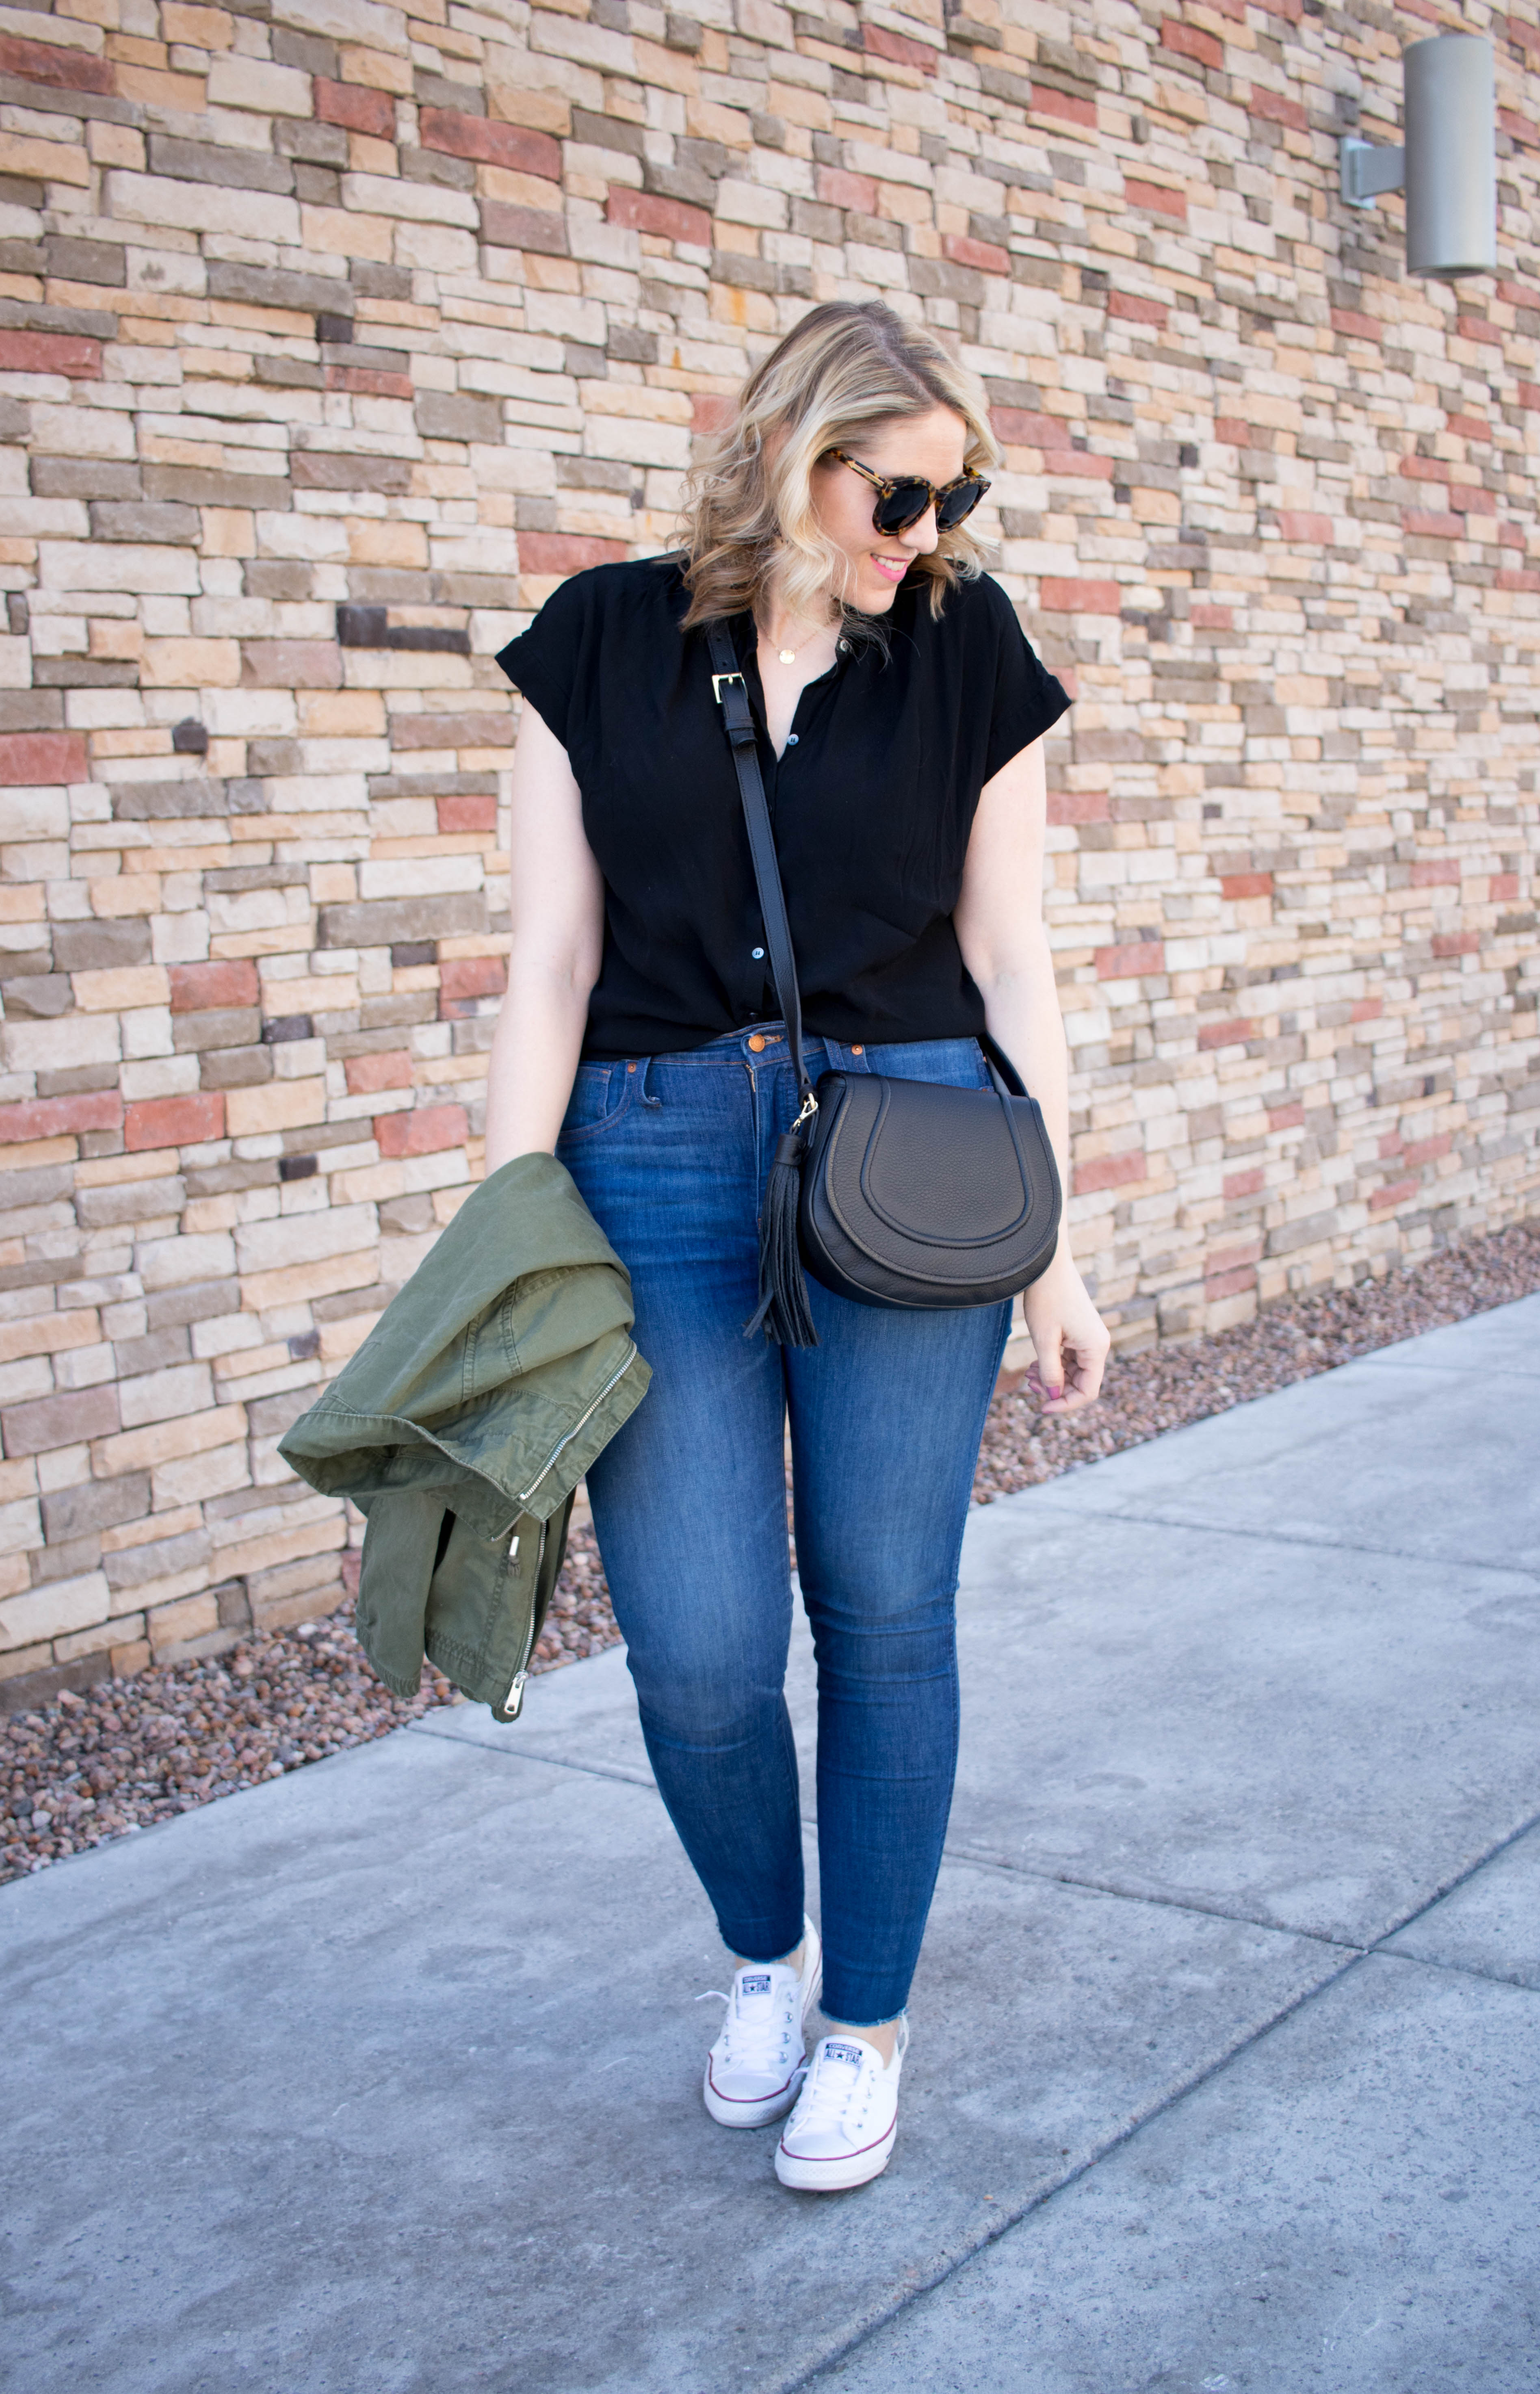 madewell jeans and central drapey shirt outfit #everydaymadewell #madewell #jeansoutfit